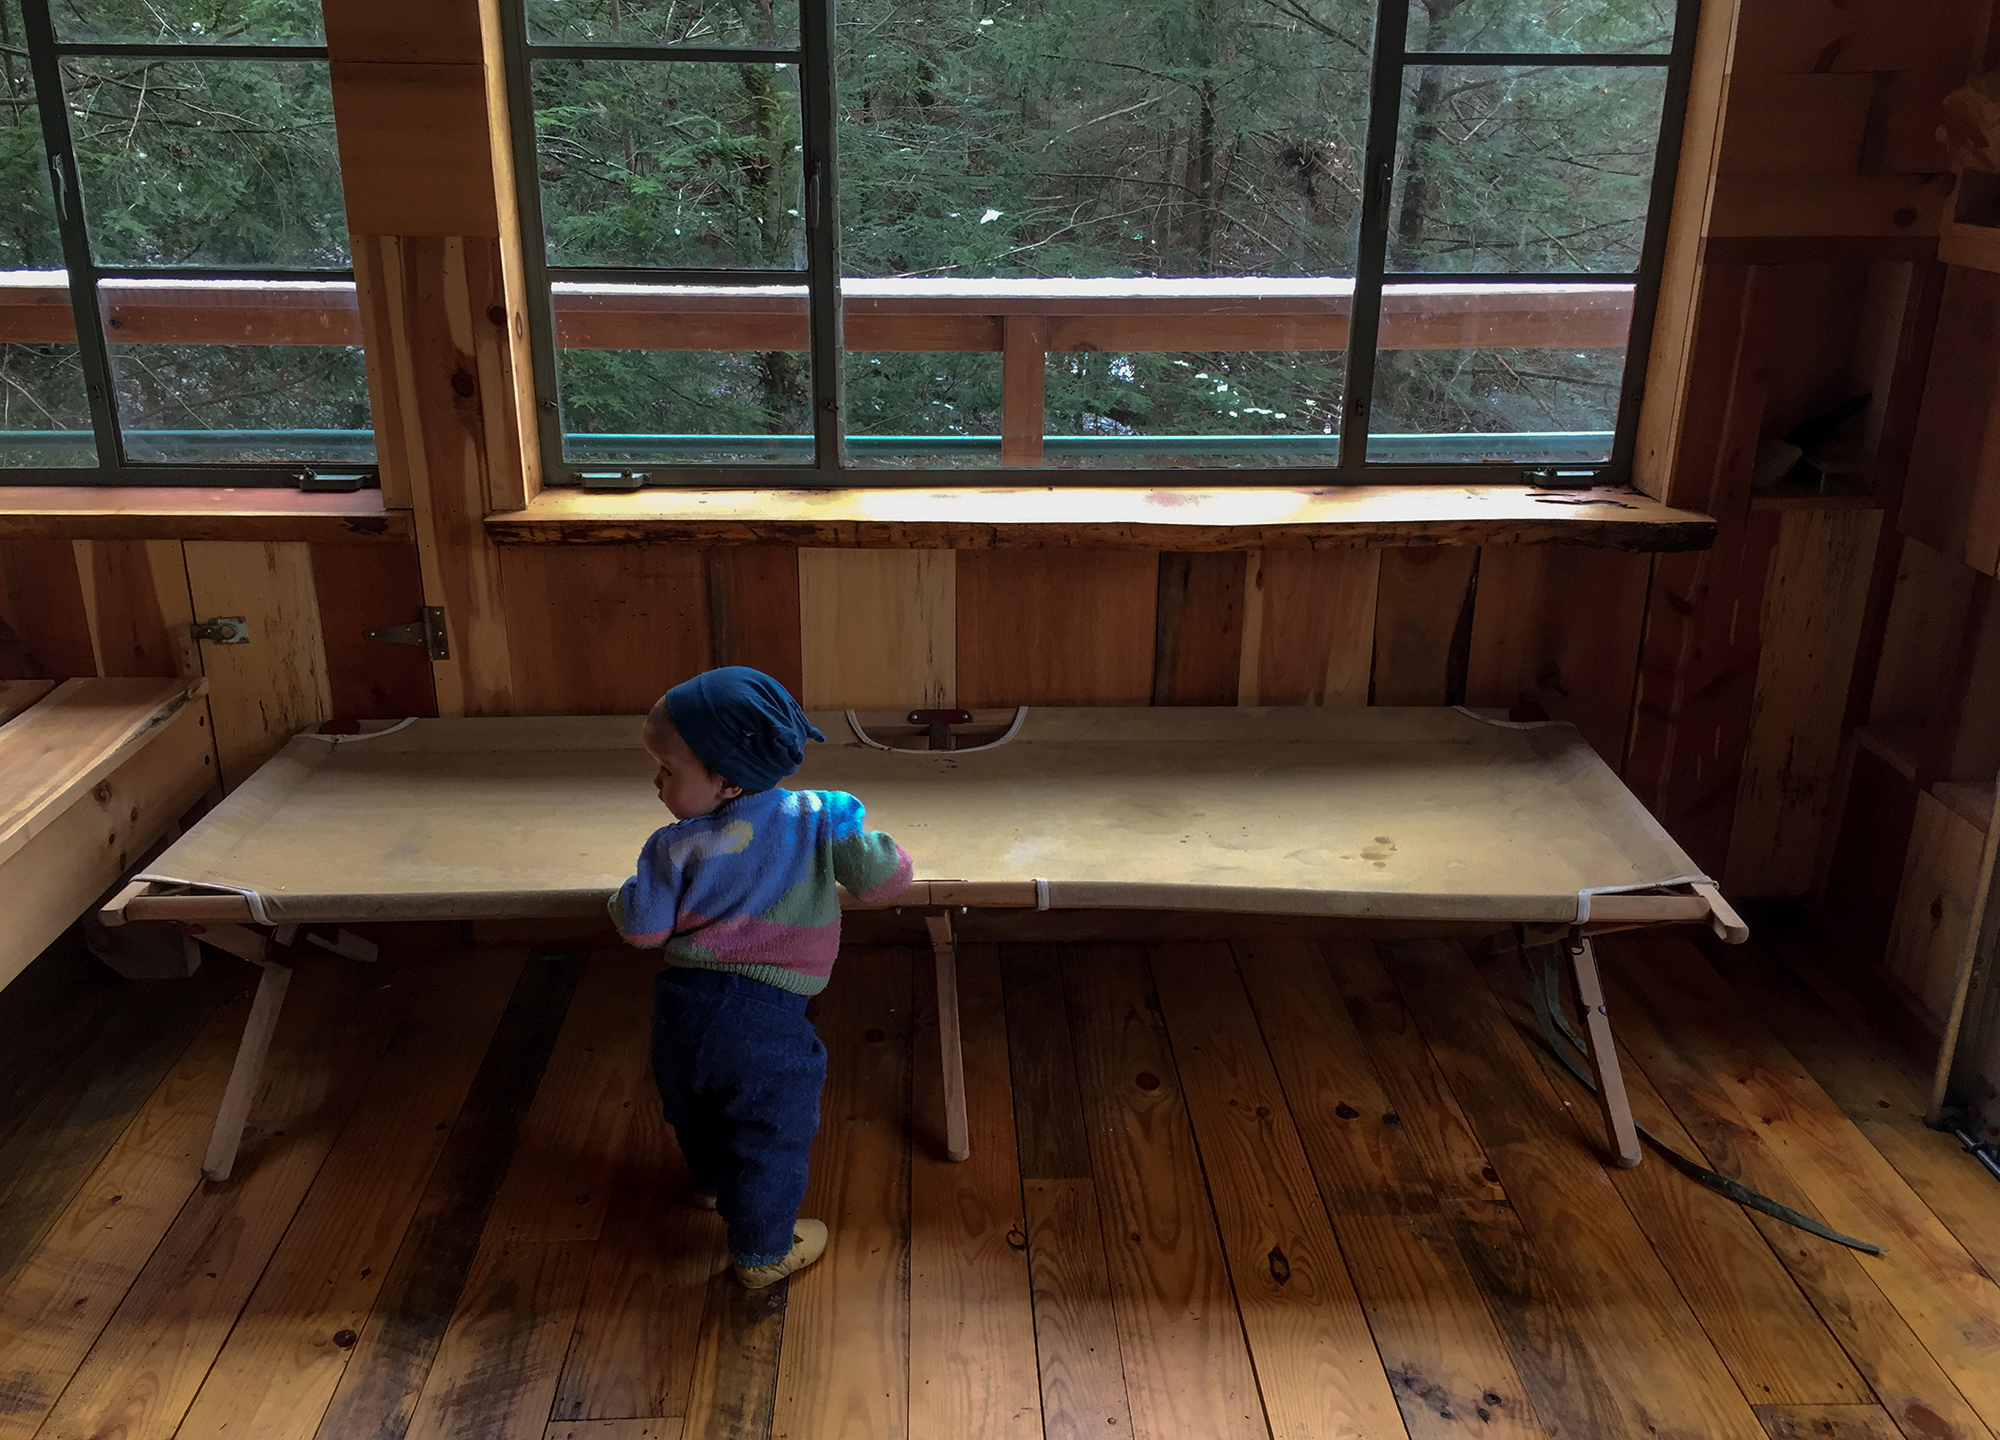 First Snow at Treehouse - Todd Roeth